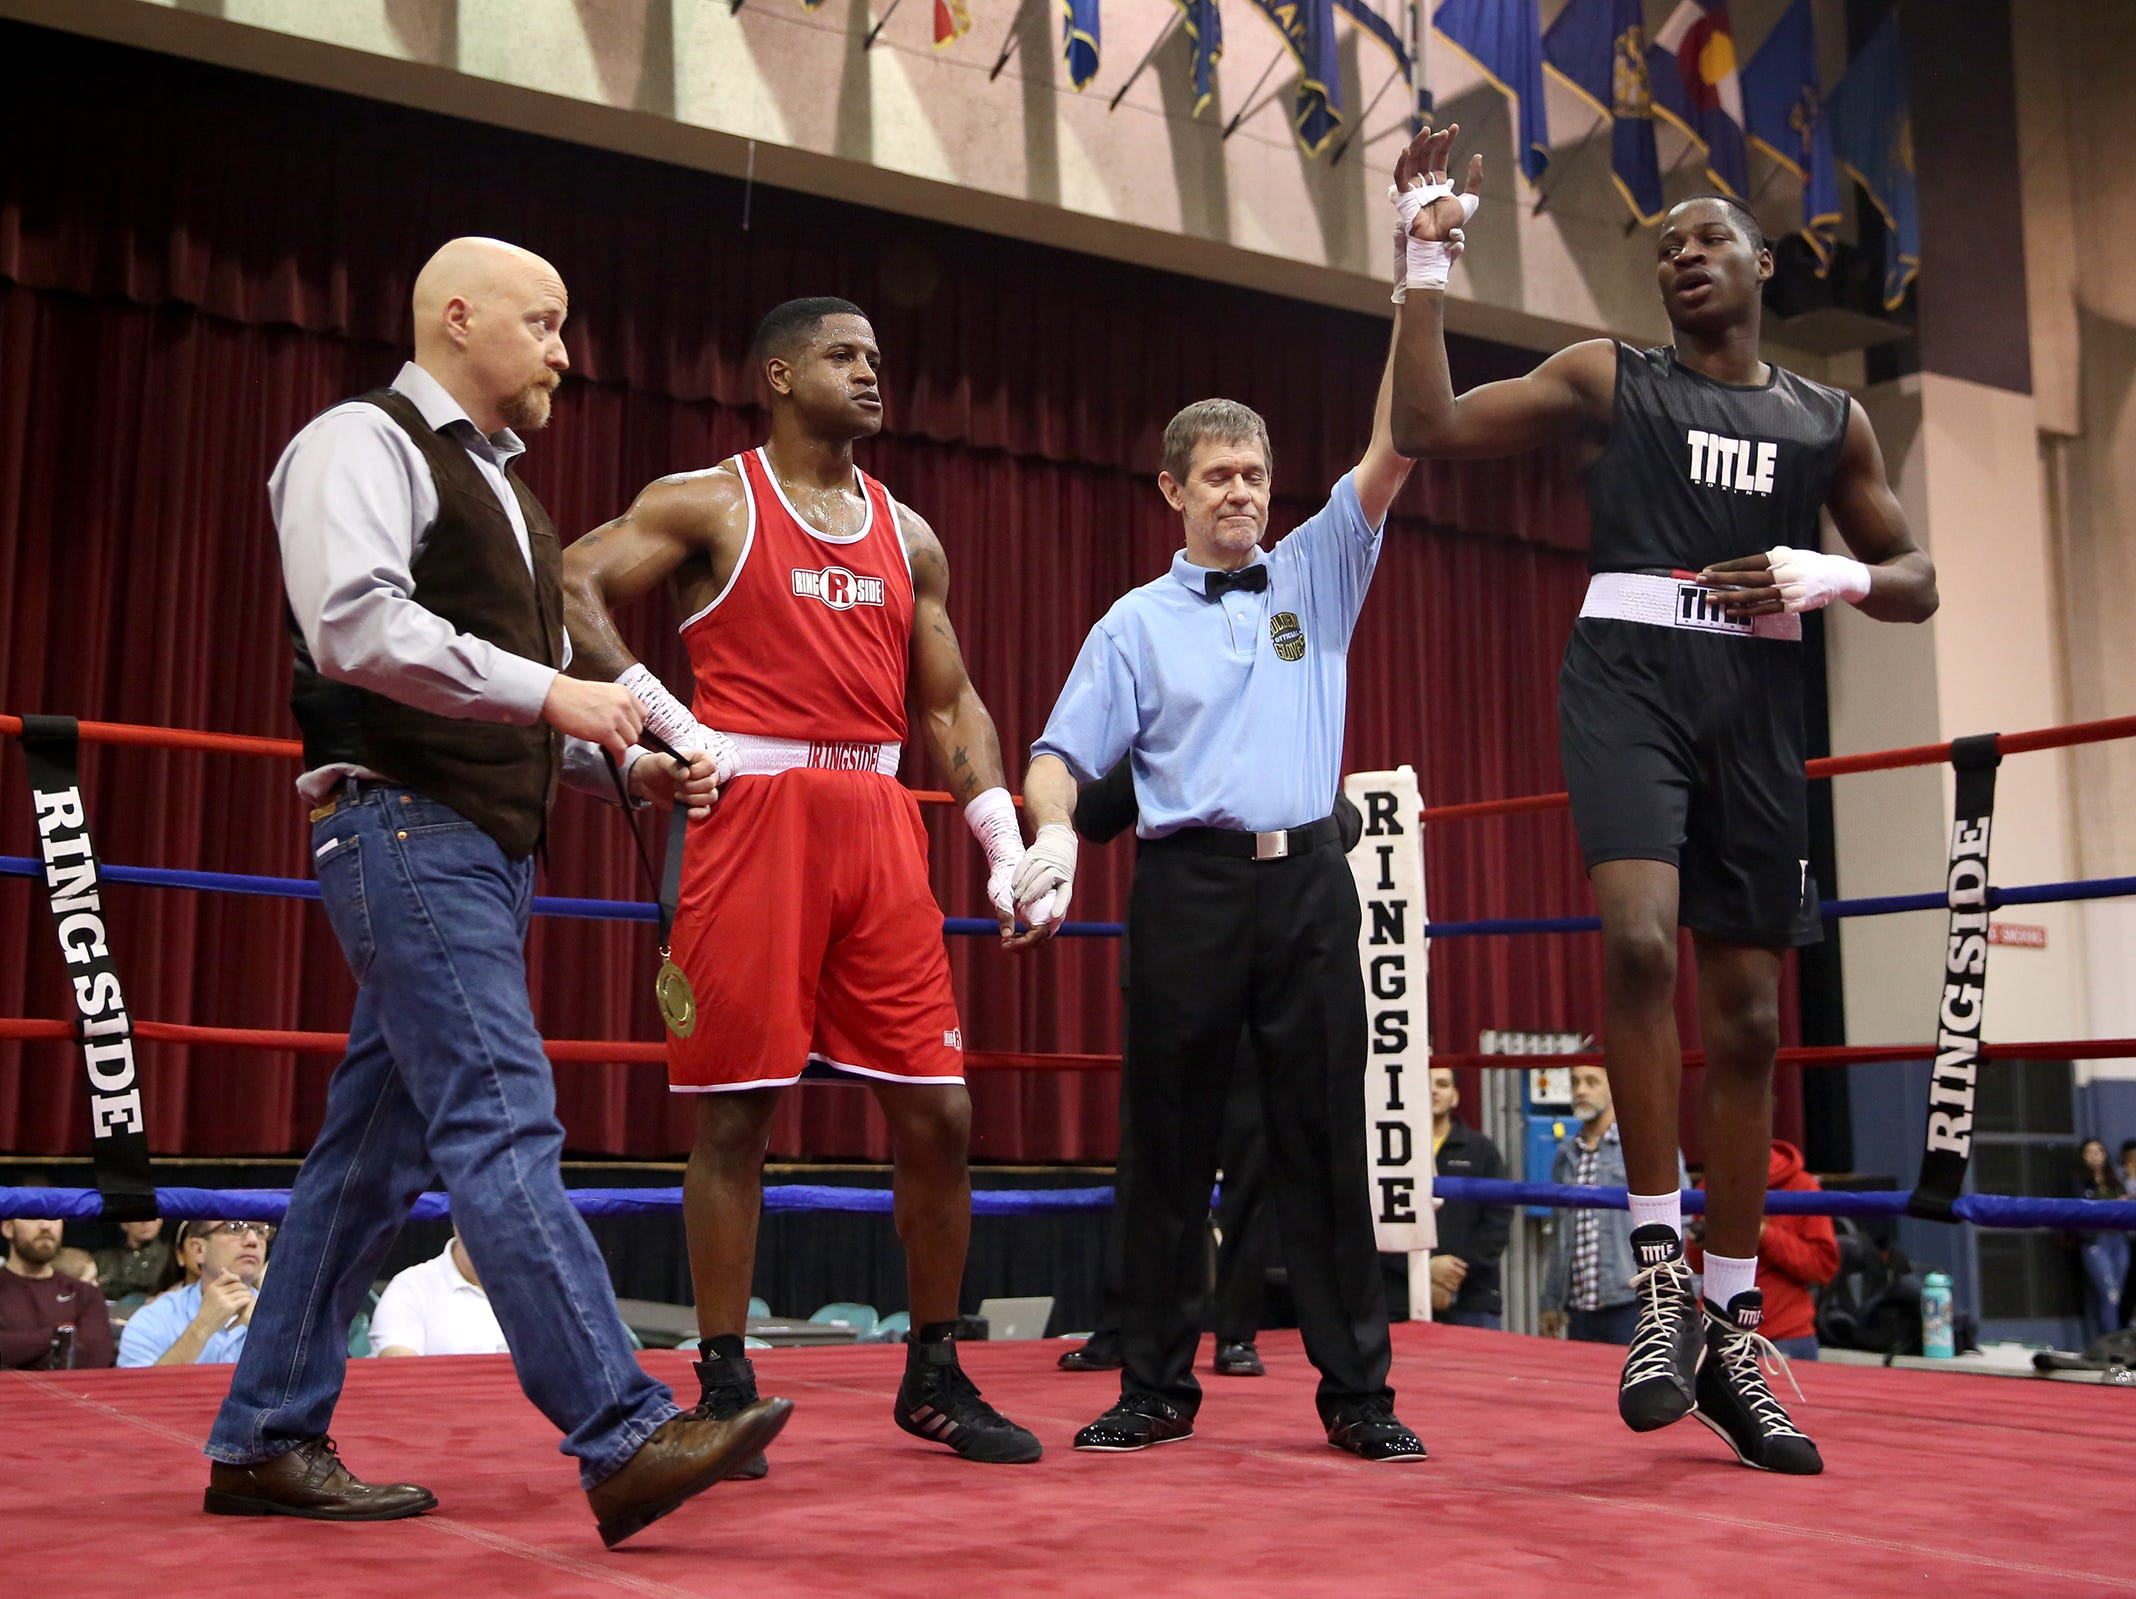 Xecareus Walker of Kent, Washington is declared winner against Michad McMillan of Tigard after their fight at the Oregon Golden Gloves championship matches at the Salem Armory on Saturday, Feb. 2, 2019.